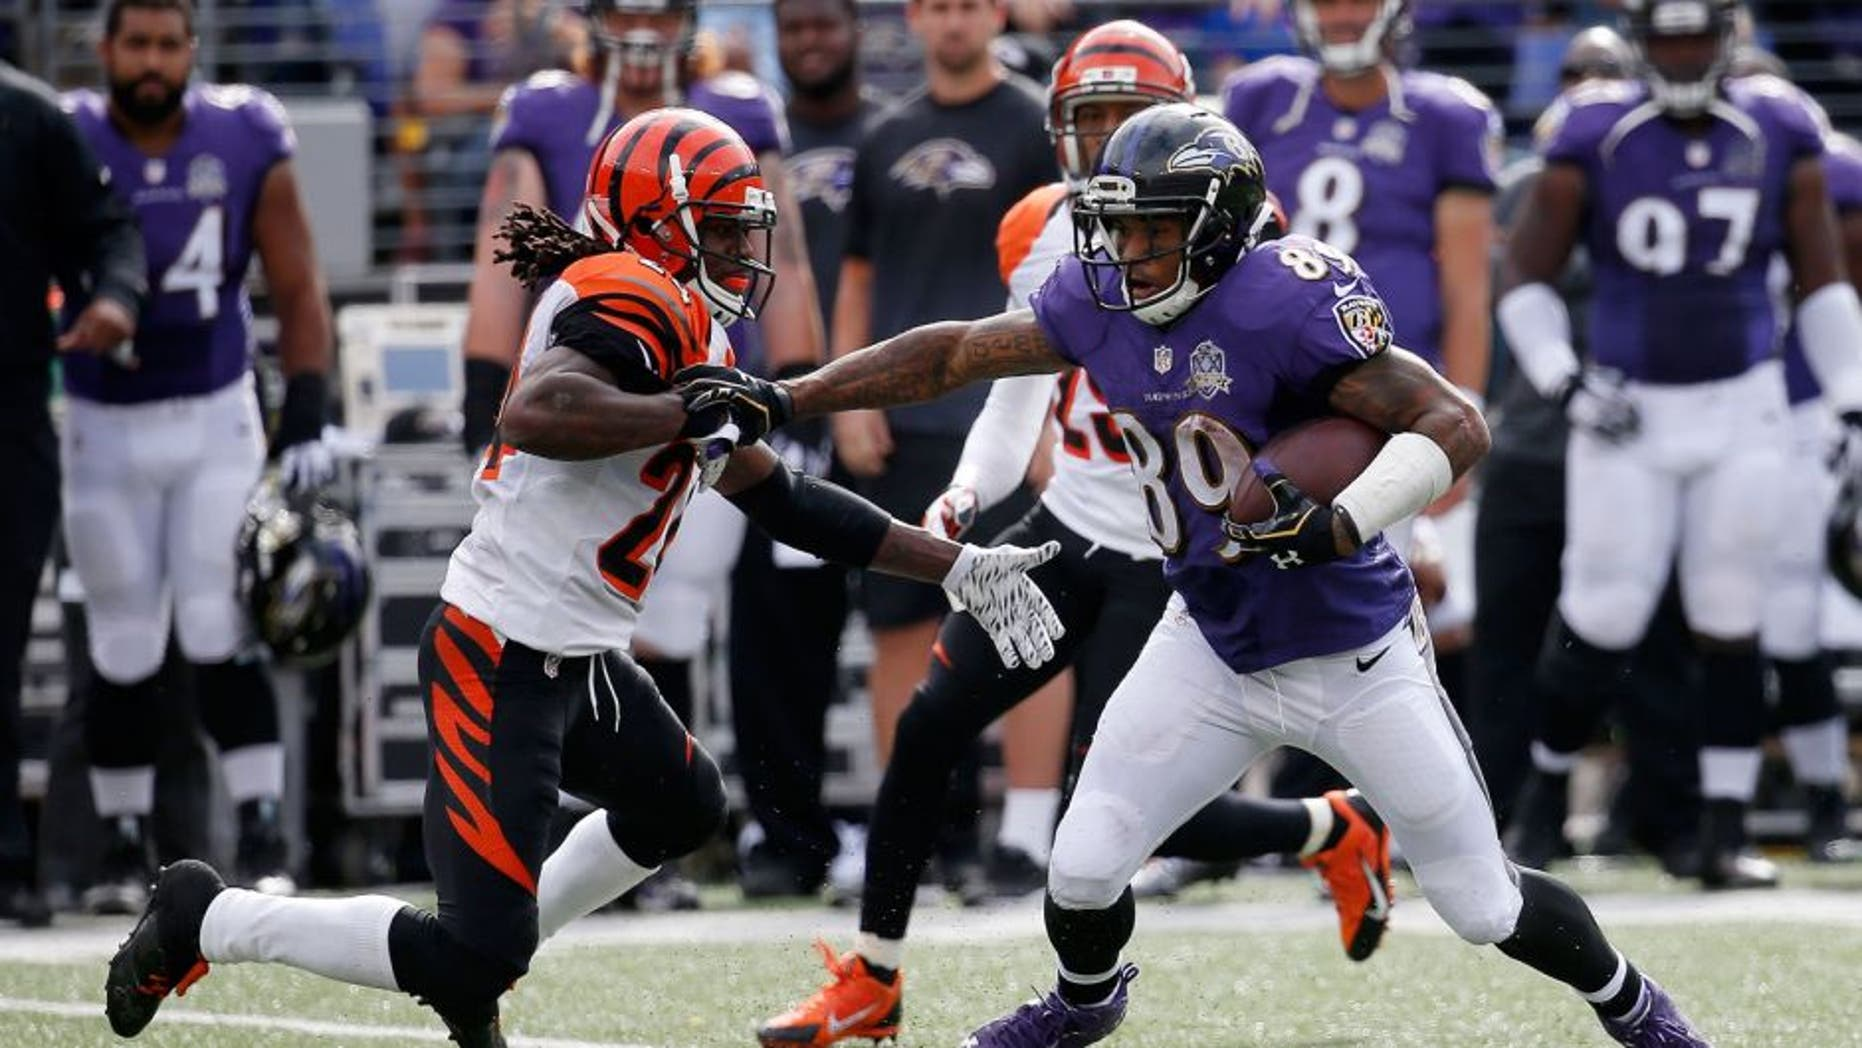 BALTIMORE, MD - SEPTEMBER 27: Wide receiver Steve Smith #89 of the Baltimore Ravens carries the ball while cornerback Adam Jones #24 of the Cincinnati Bengals defends in the third quarter of a game at M&T Bank Stadium on September 27, 2015 in Baltimore, Maryland. (Photo by Rob Carr/Getty Images)